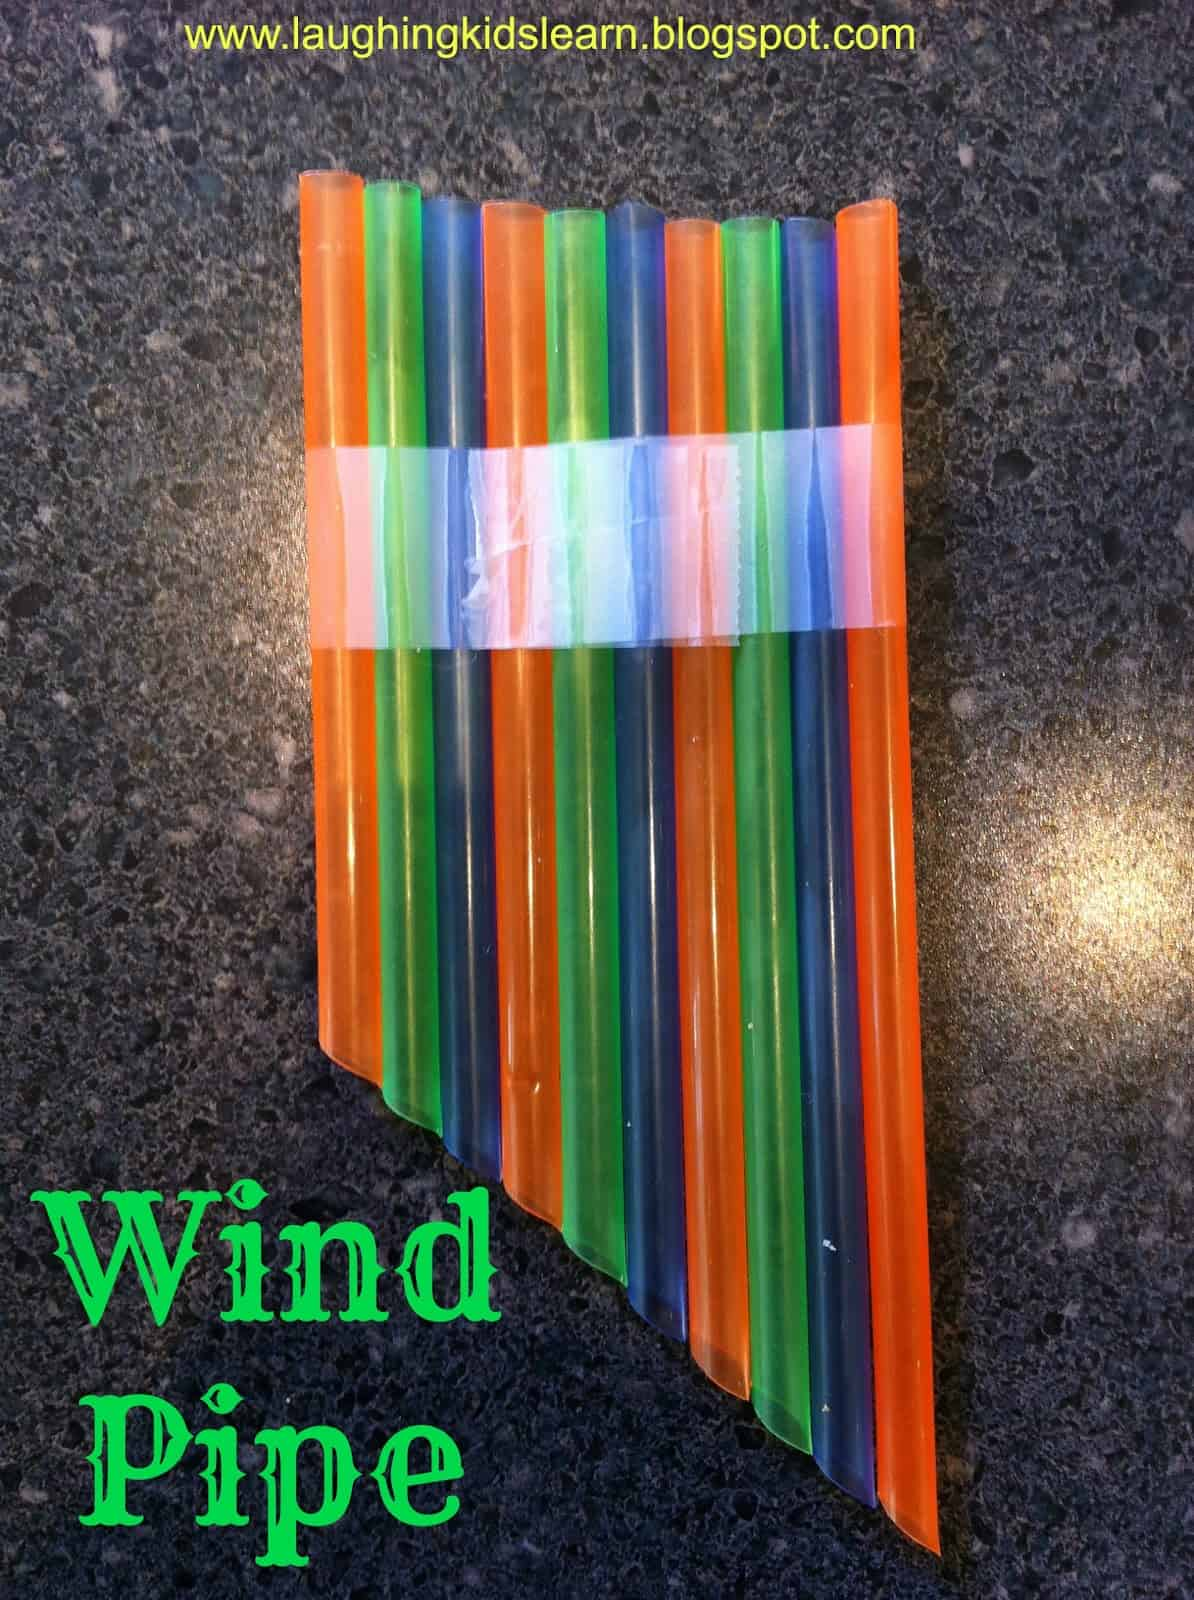 Straw wind pipe